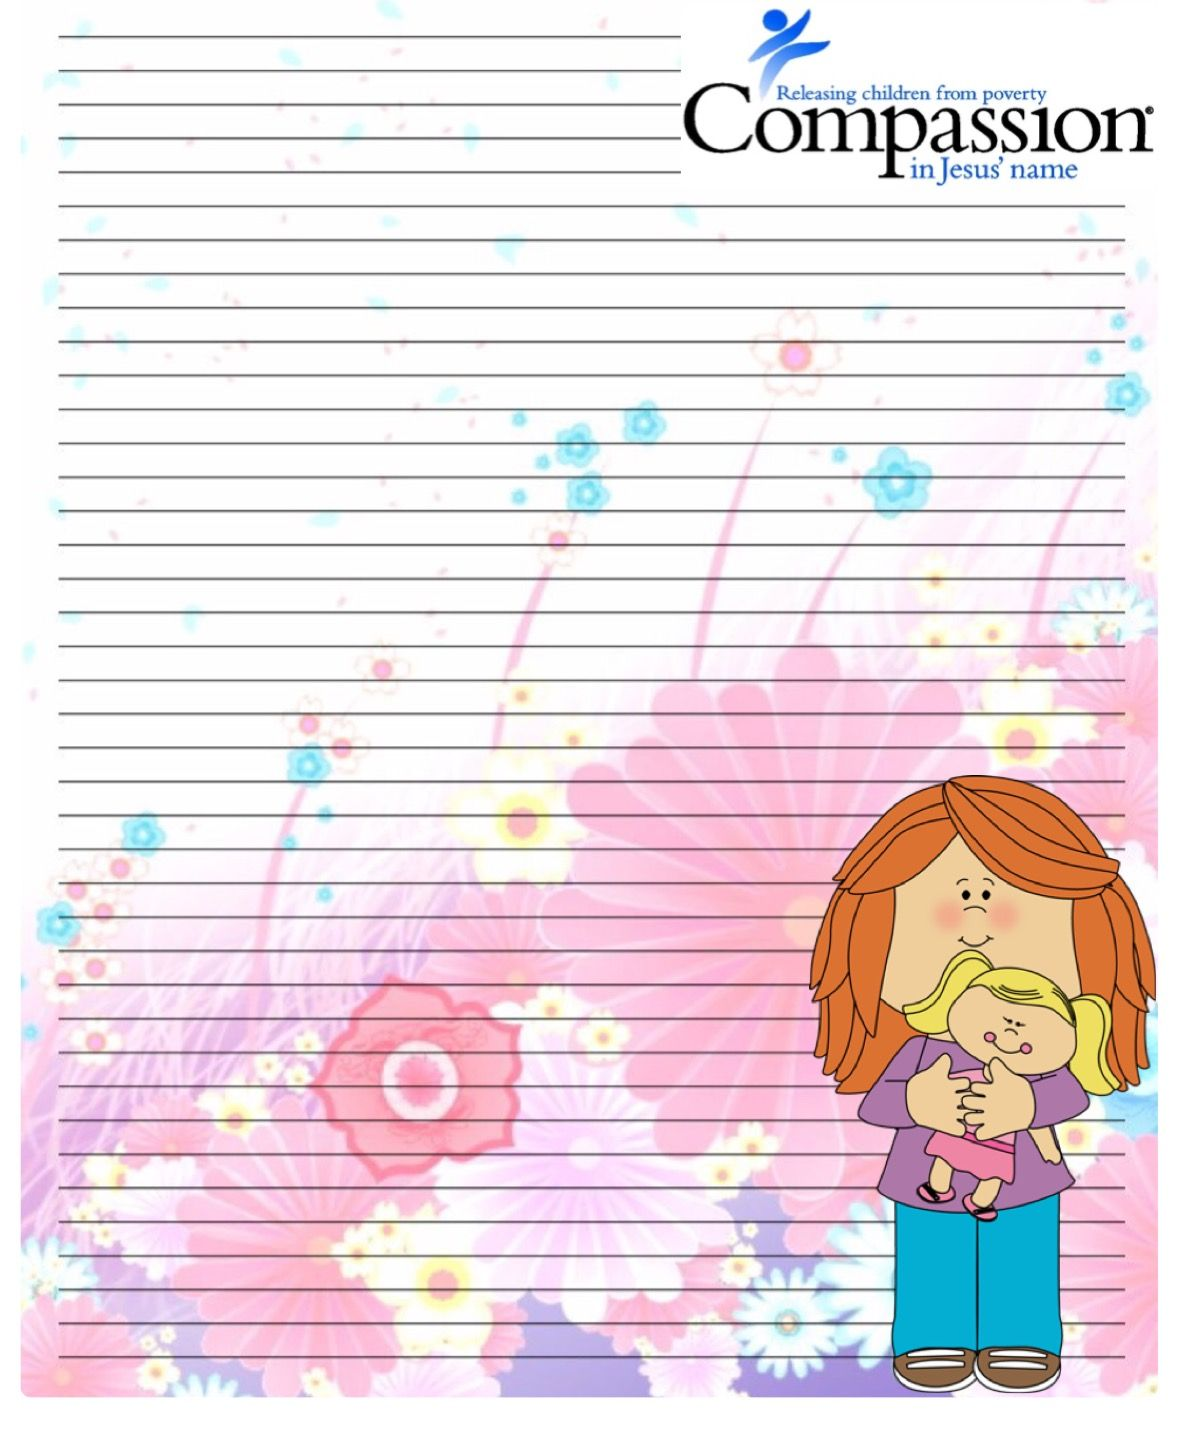 Compassion International stationary for sponsored kids